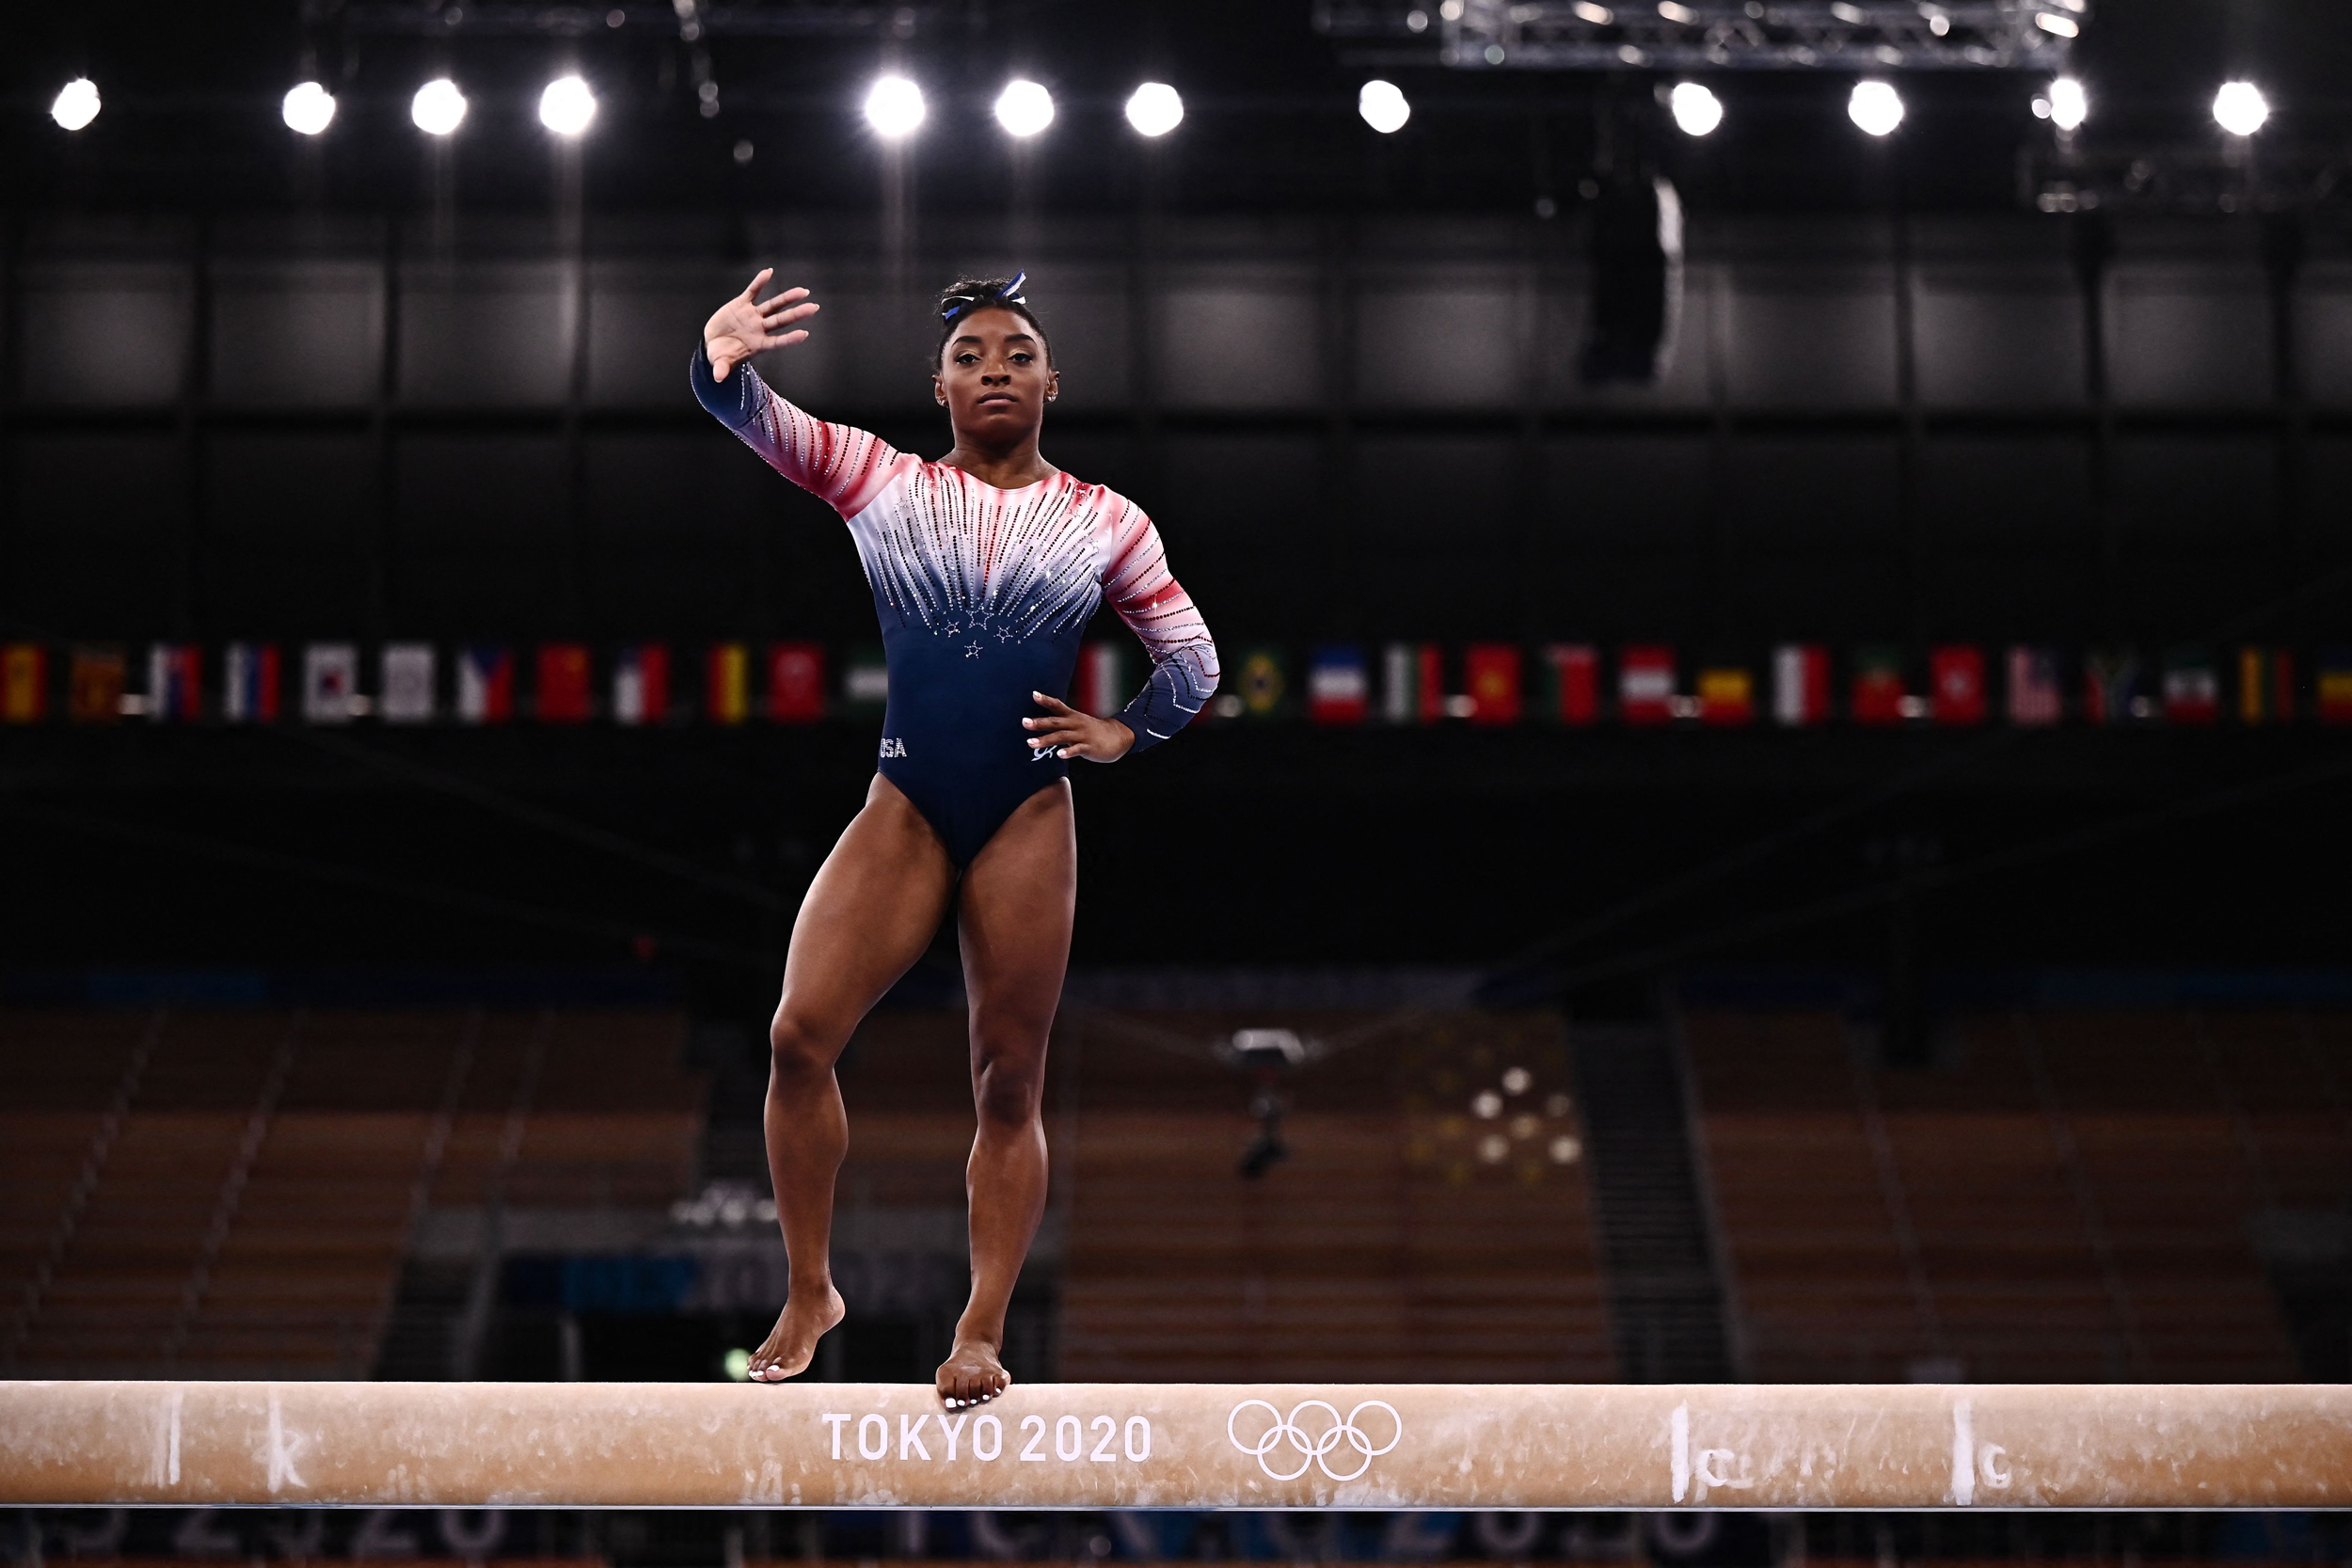 Simone Biles' Olympic career may be over but experts say her influence will transcend gymnastics